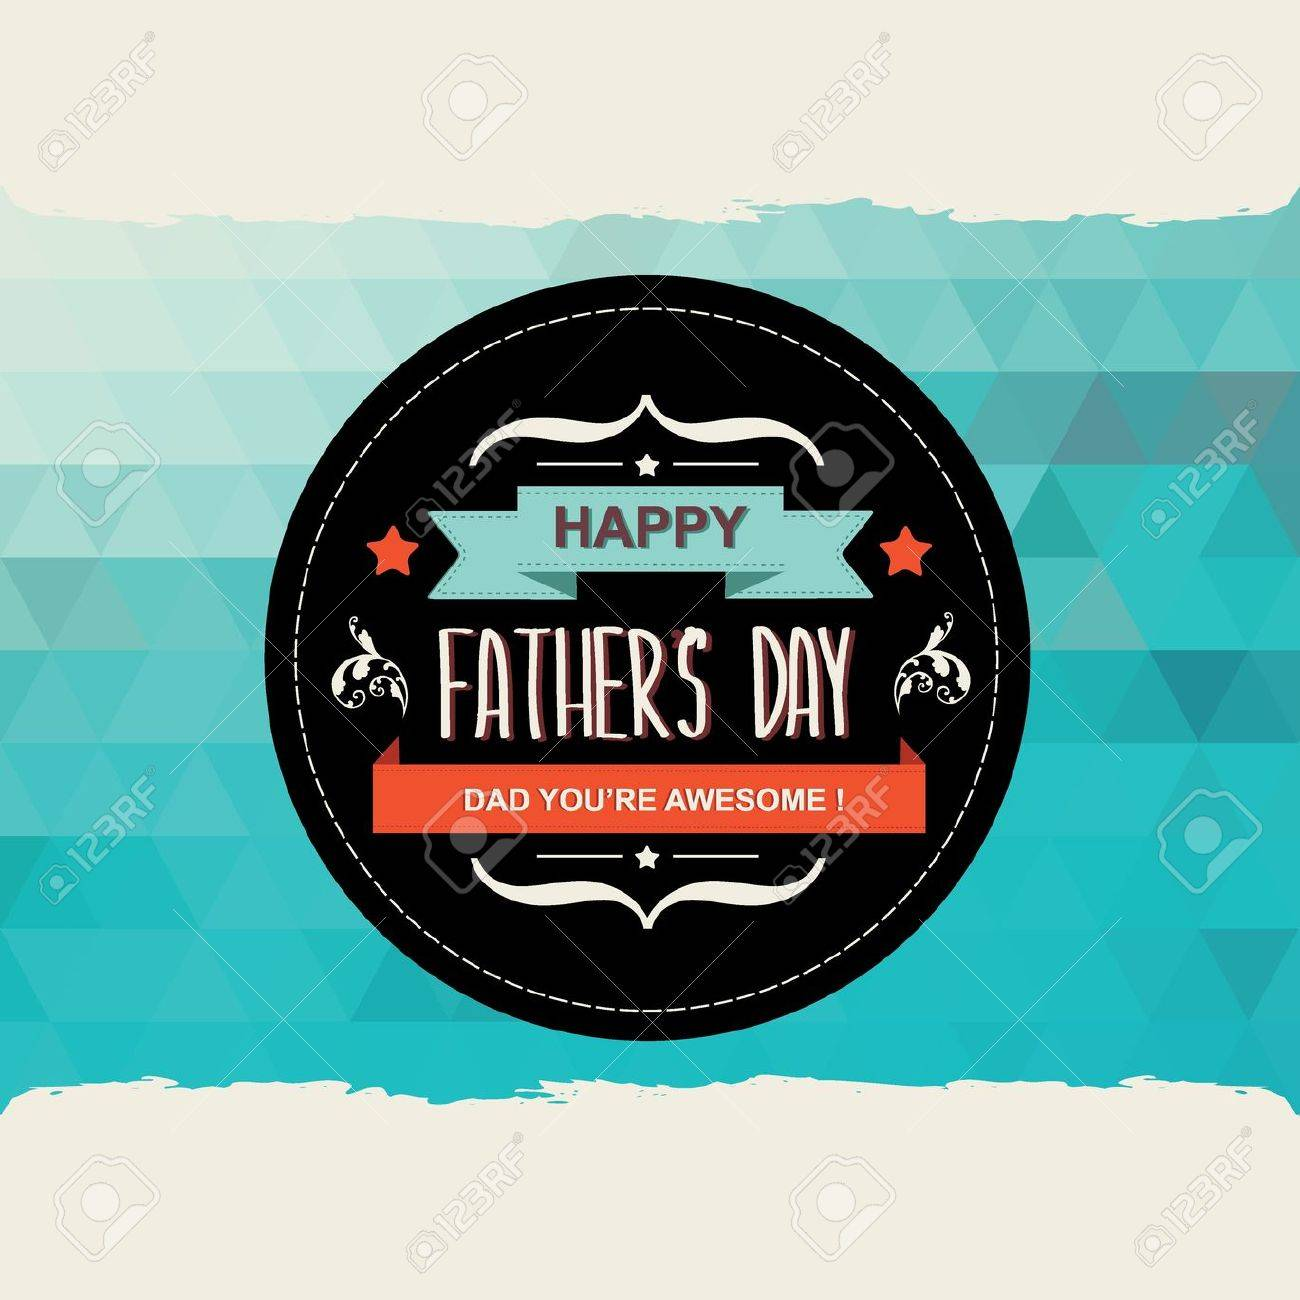 Poster Happy father s day Typography Vector illustration Stock Vector - 21133753